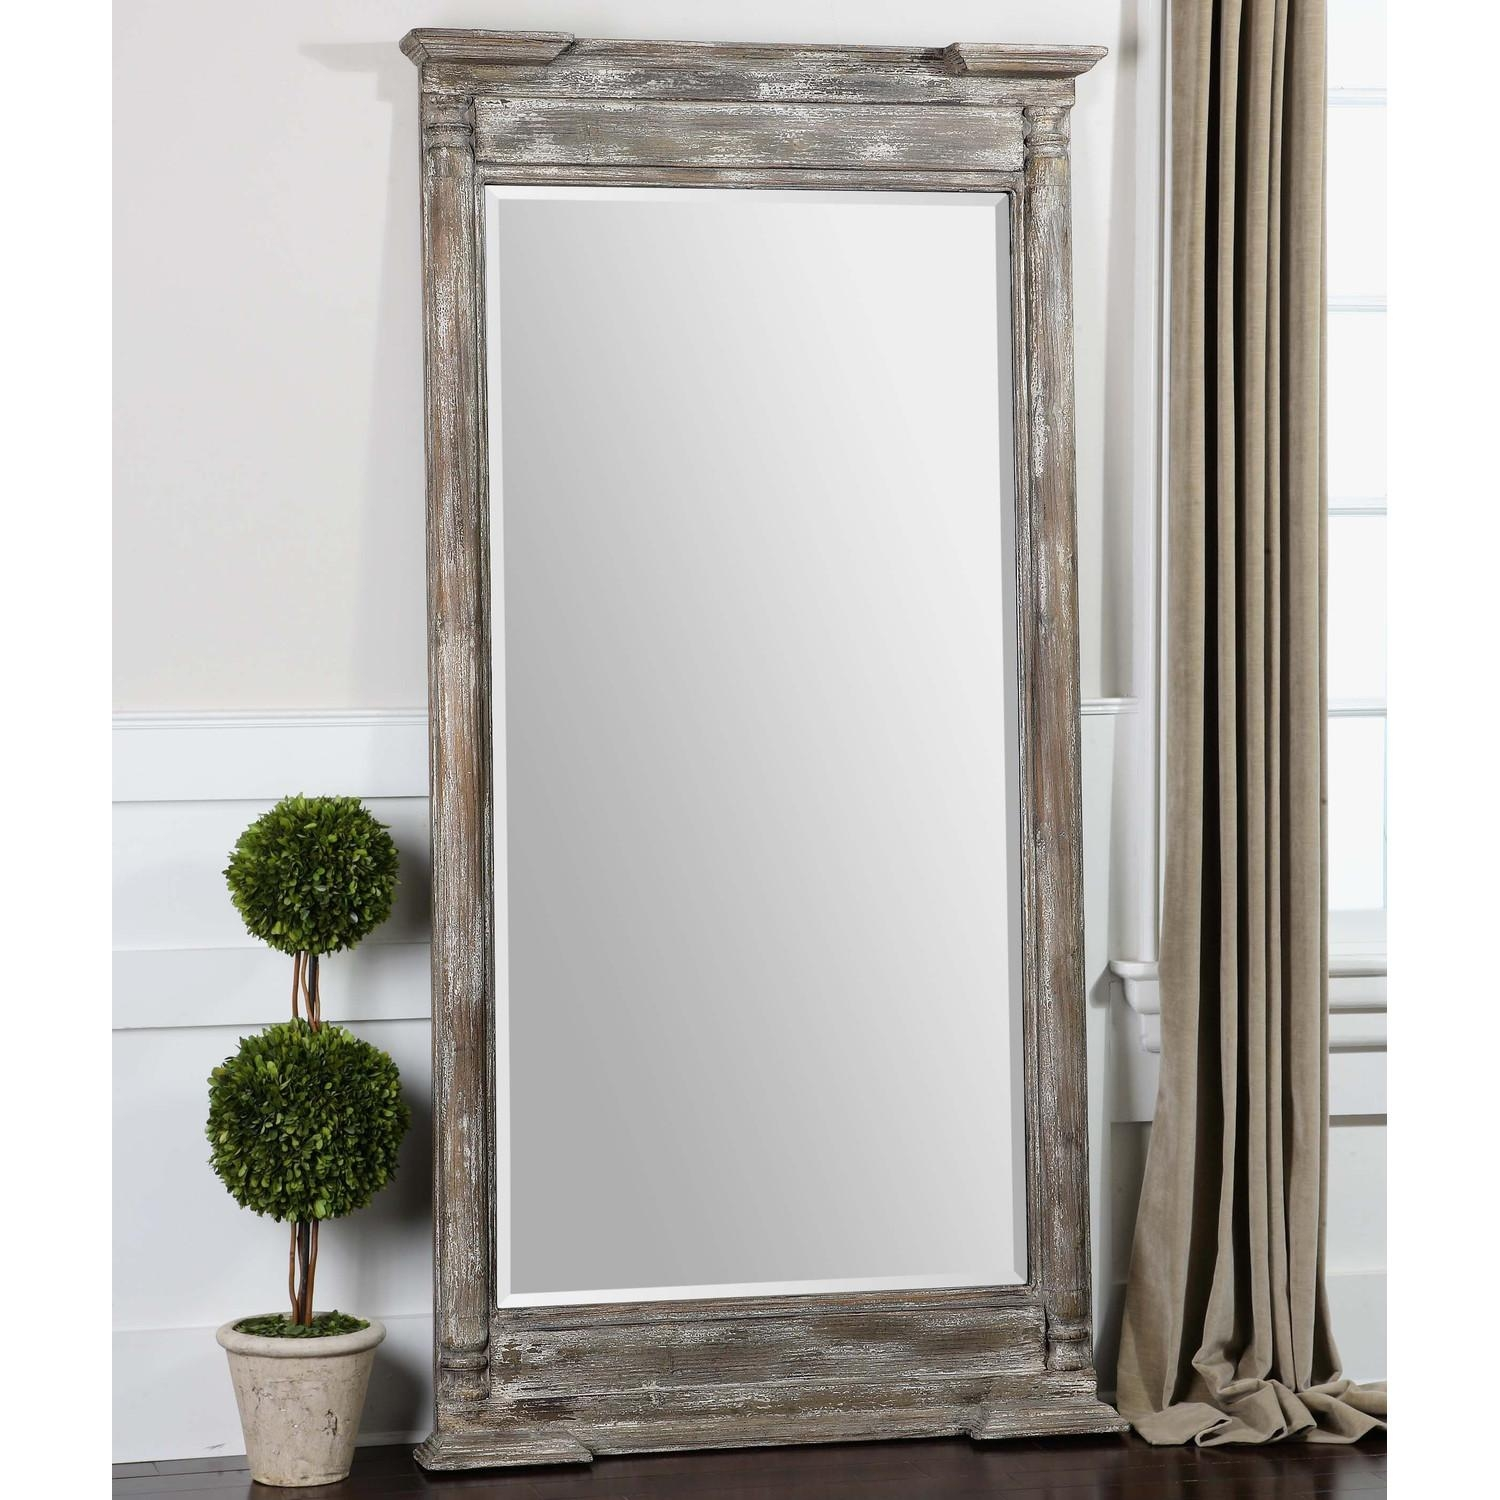 Extra Large Wall Mirrors 16 Cute Interior And Full Length Wall Intended For Extra Large Full Length Mirror (View 3 of 20)